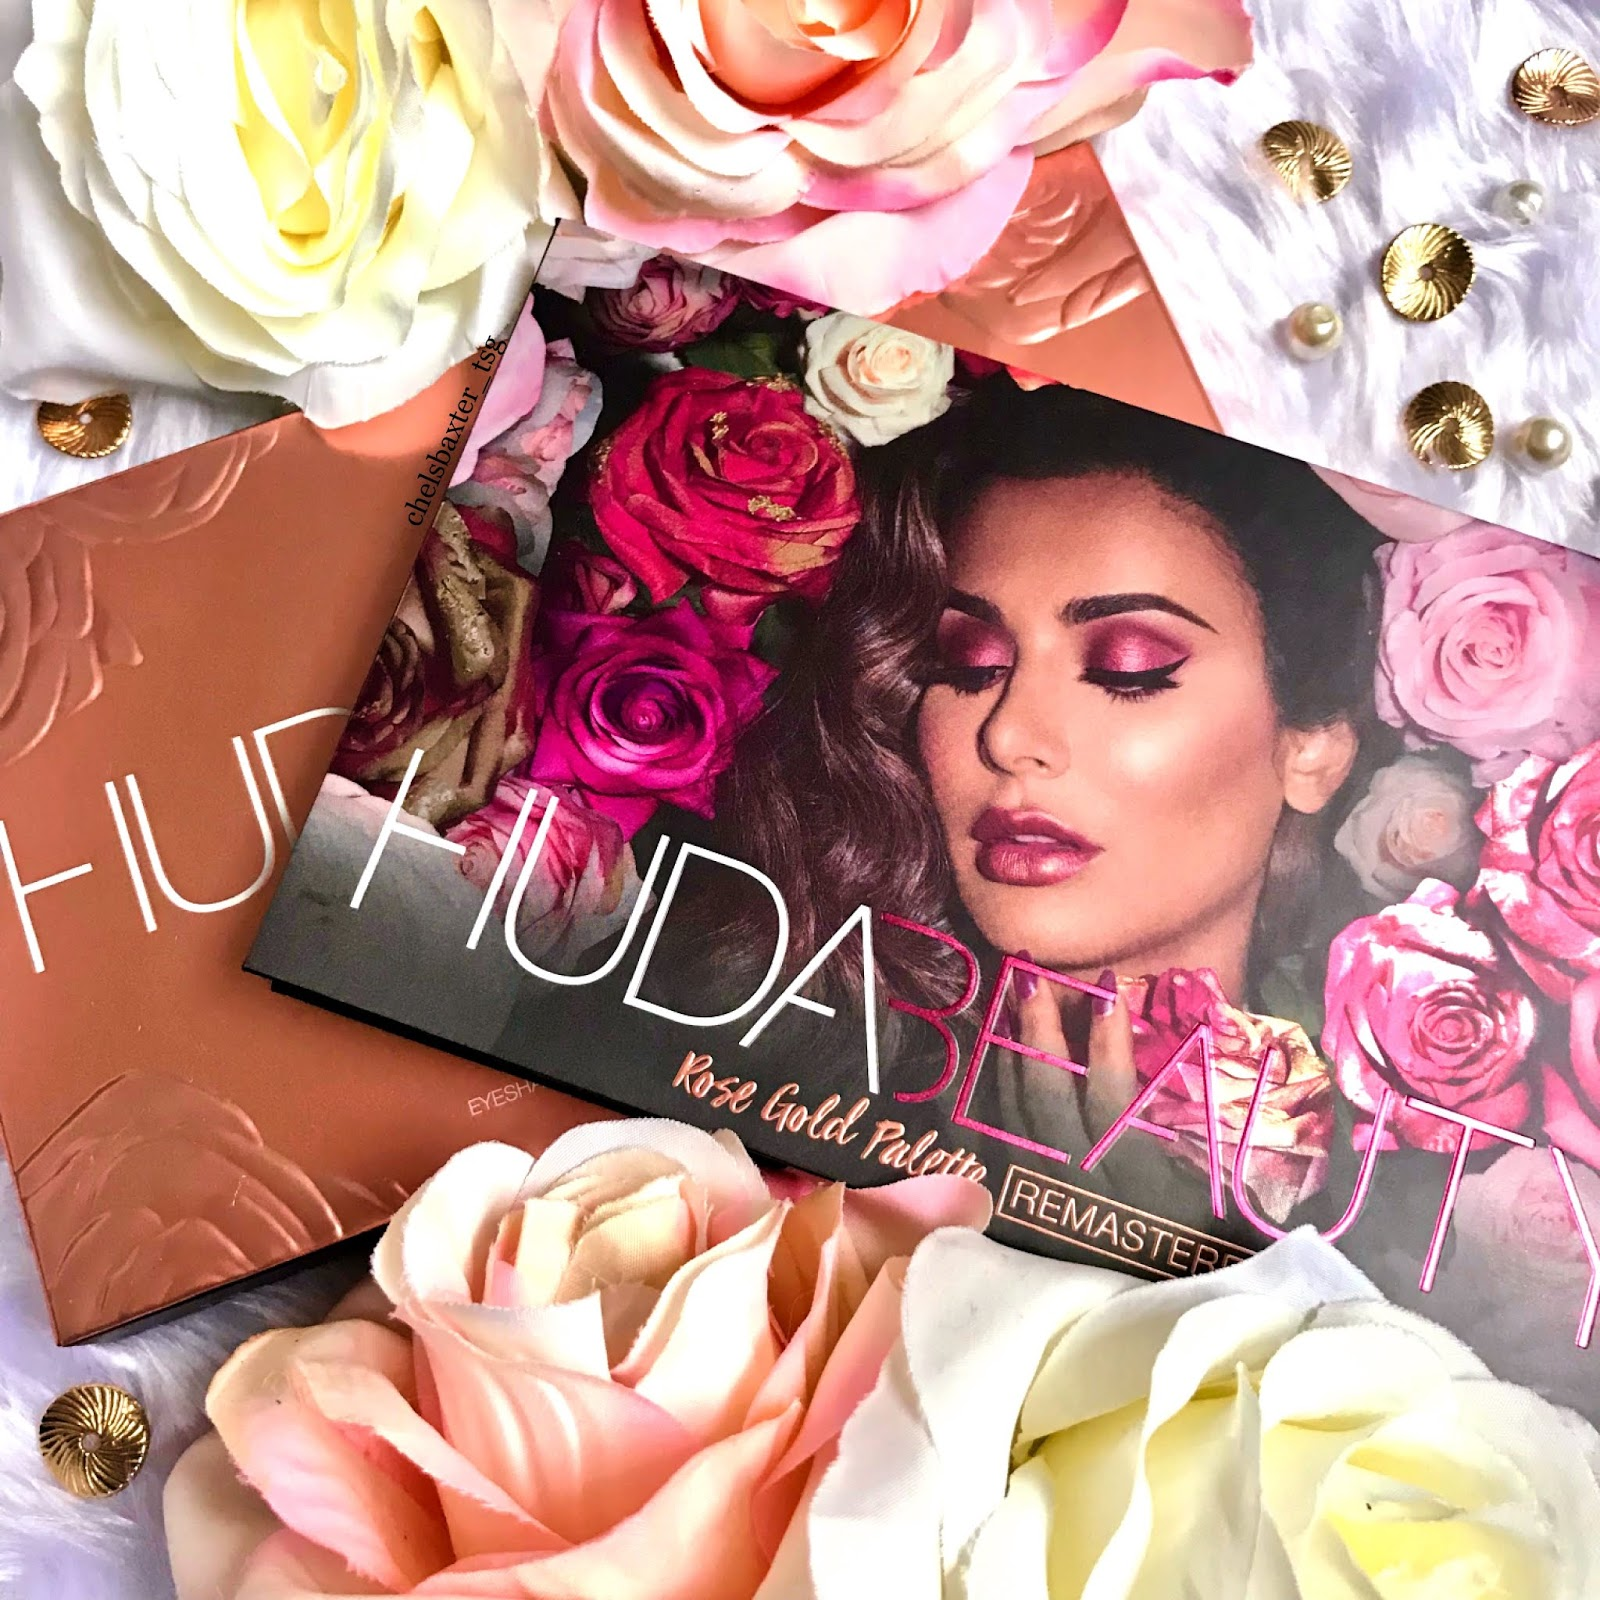 New Huda Beauty Rose Gold Remastered Review Swatches That Skint Gal